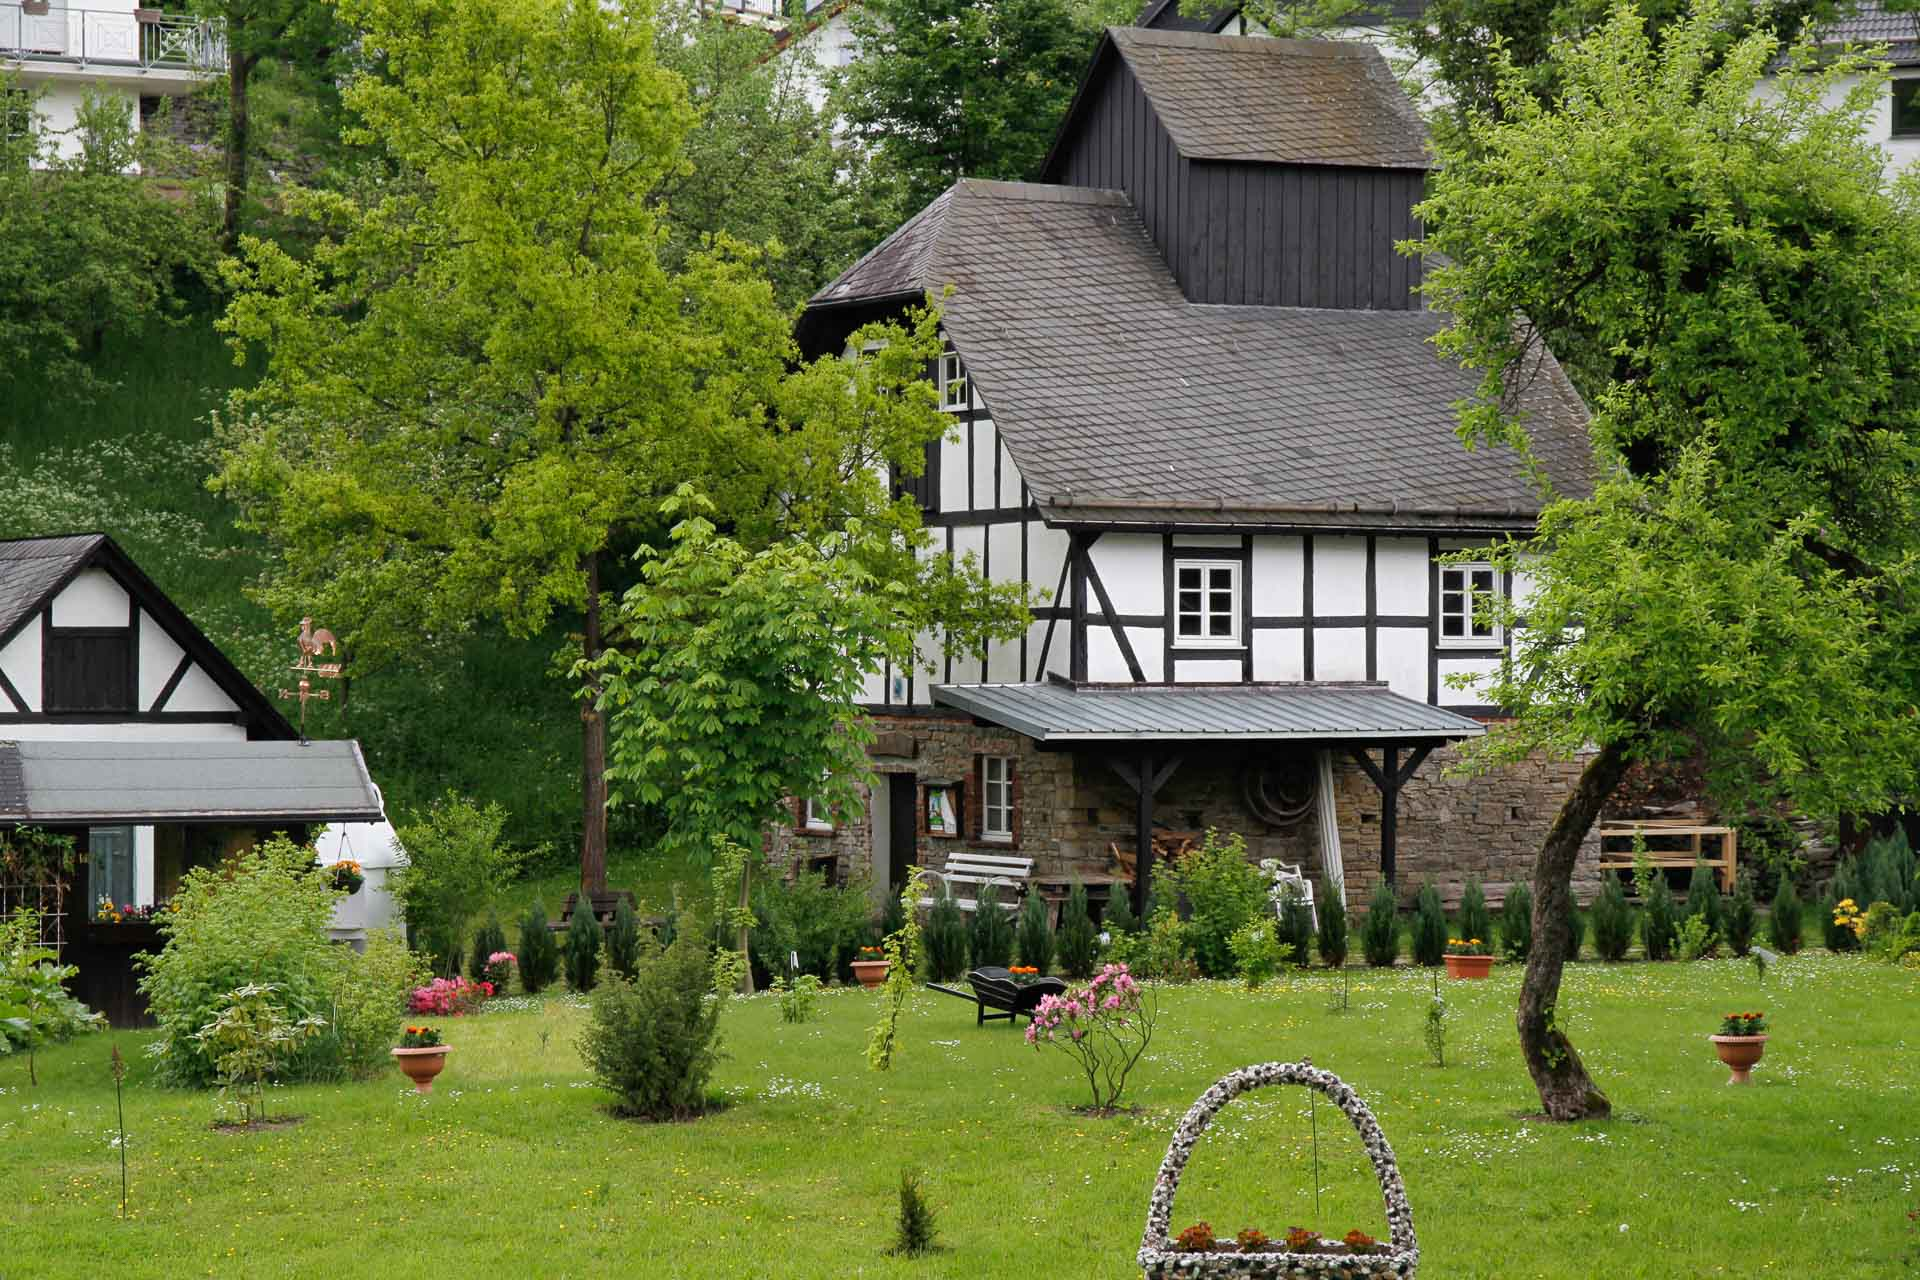 Alte Mühle in Cobbenrode